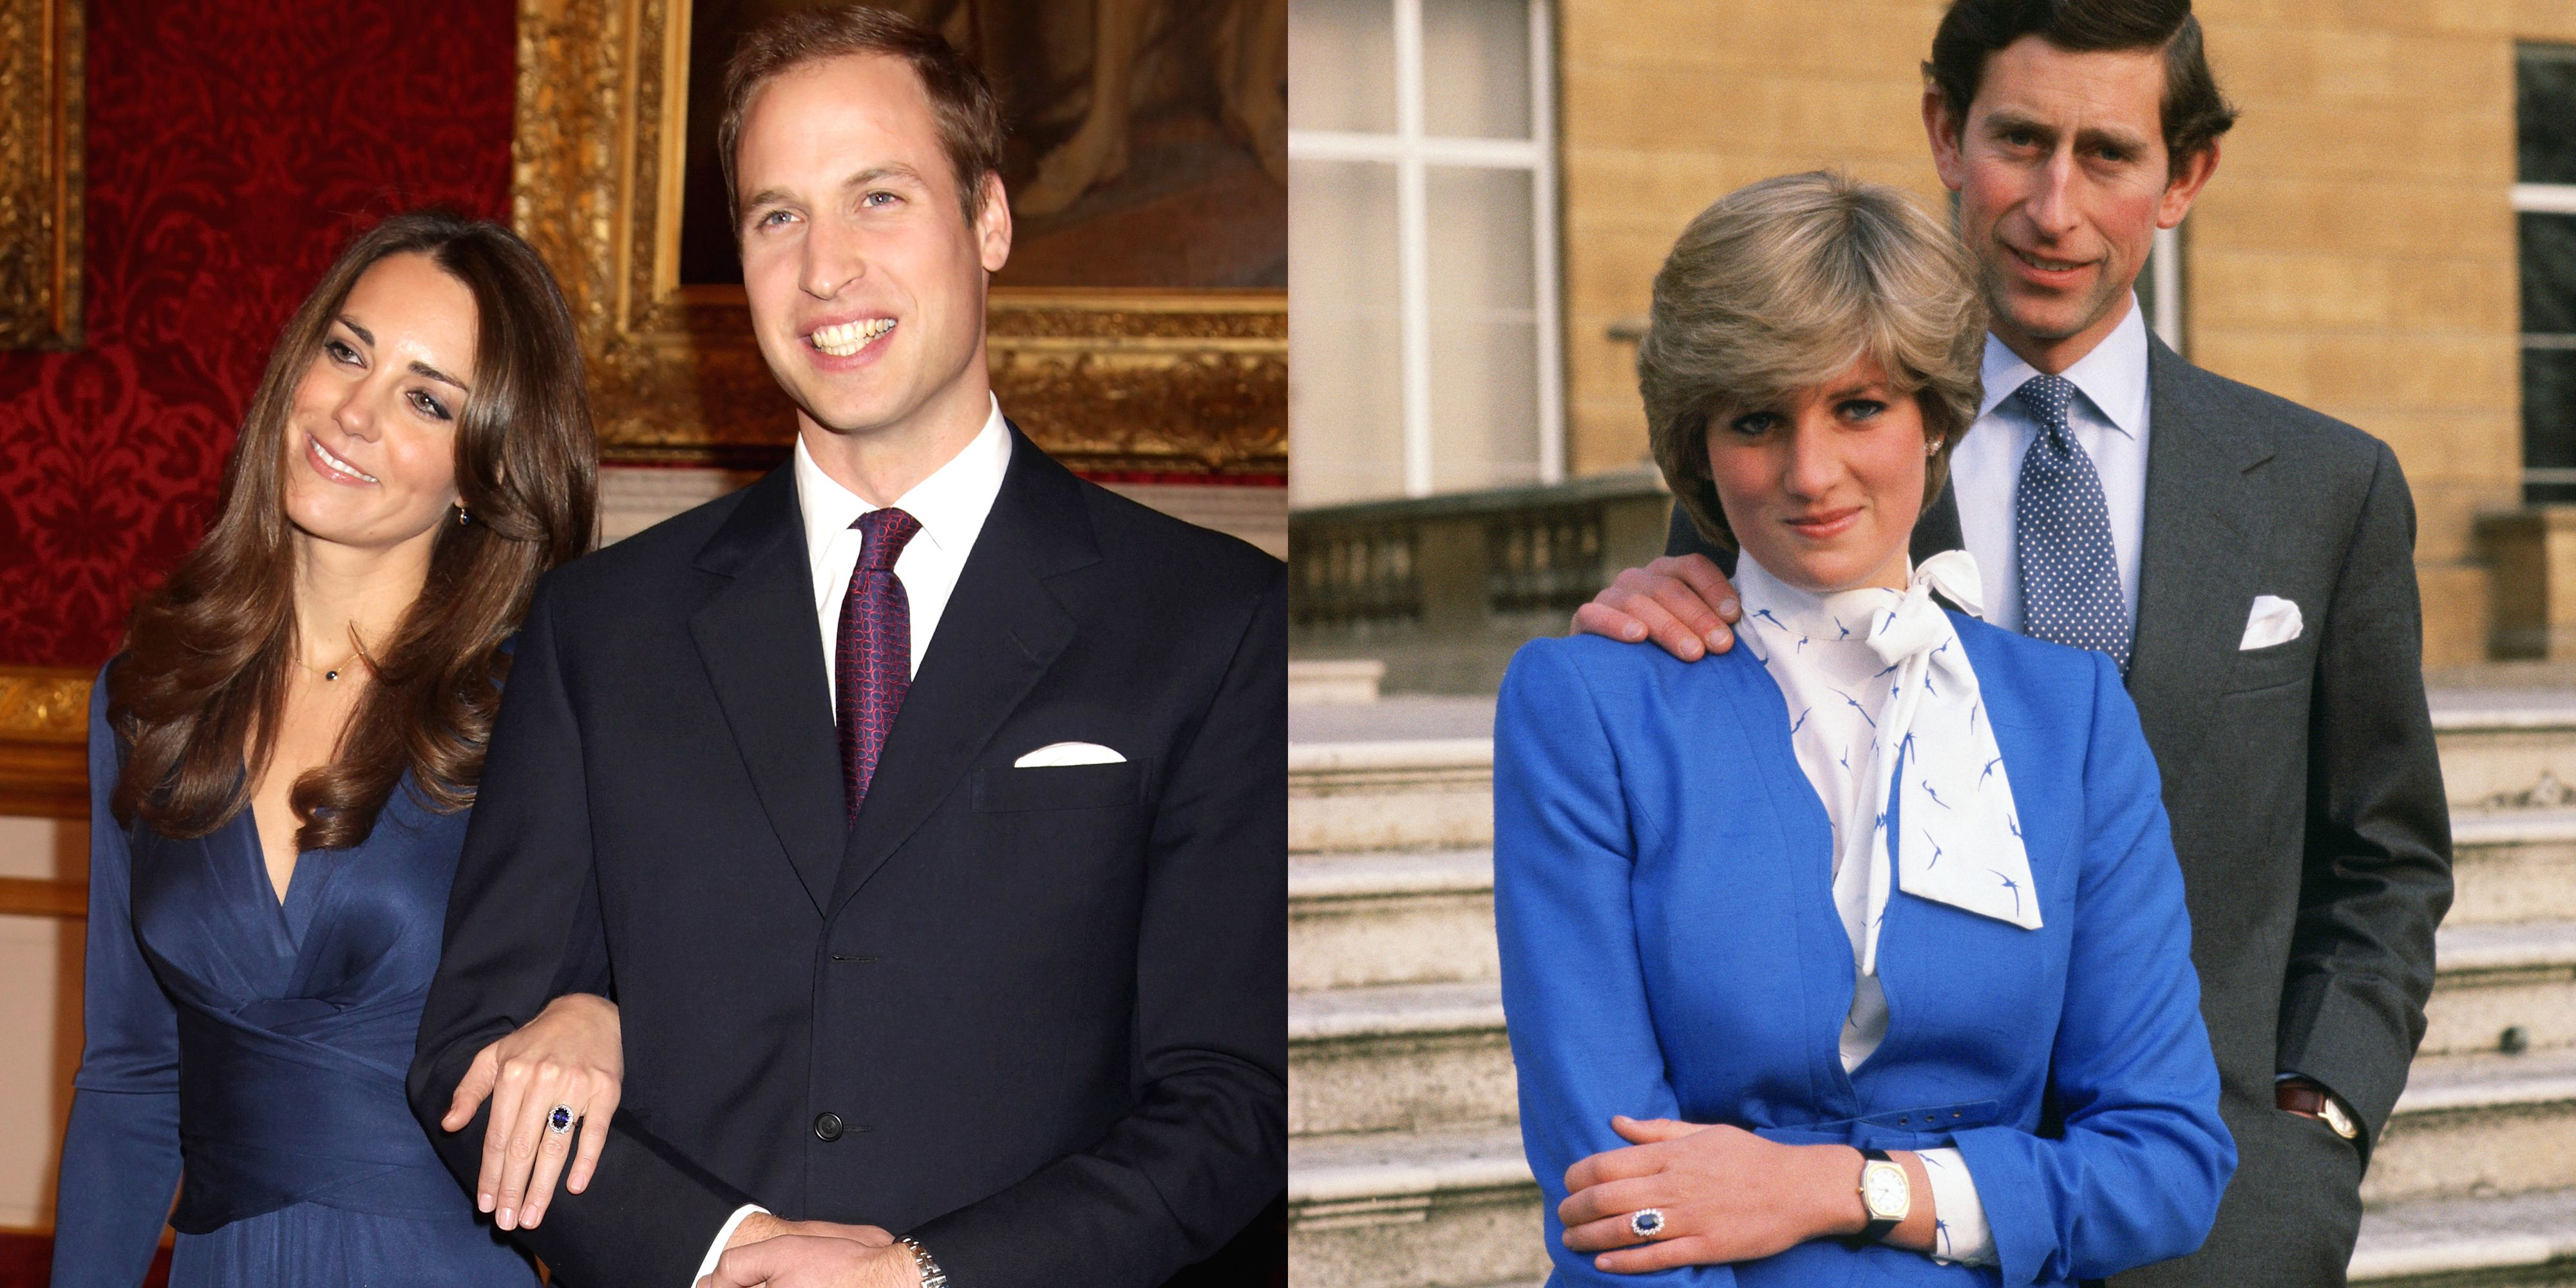 """<p>As you're probably well-aware, Kate's engagement ring once belonged to Princess Diana, and features fourteen diamonds surrounding a twelve carat sapphire. Apparently, Prince Charles allowed his sons to pick a memento&nbsp&#x3B;from Diana's collection when she died—and it was actually&nbsp&#x3B;Harry who picked the ring, while William <a href=""""http://www.vanityfair.com/news/2003/09/princes-private-world-200309"""" target=""""_blank"""" data-saferedirecturl=""""https://www.google.com/url?hl=en&amp&#x3B;q=http://www.vanityfair.com/news/2003/09/princes-private-world-200309&amp&#x3B;source=gmail&amp&#x3B;ust=1499790911007000&amp&#x3B;usg=AFQjCNE-XfyQxrD0X2L4Qdtb27zML02lzg"""">chose</a> his mother's Cartier watch. They switched items when Will&nbsp&#x3B;decided to propose to Kate. 'It is very special to me,"""" he said. """"It was my way of making sure my mother didn't miss out on today, and the excitement, and the fact we are going to spend the rest of our lives together.""""</p>"""